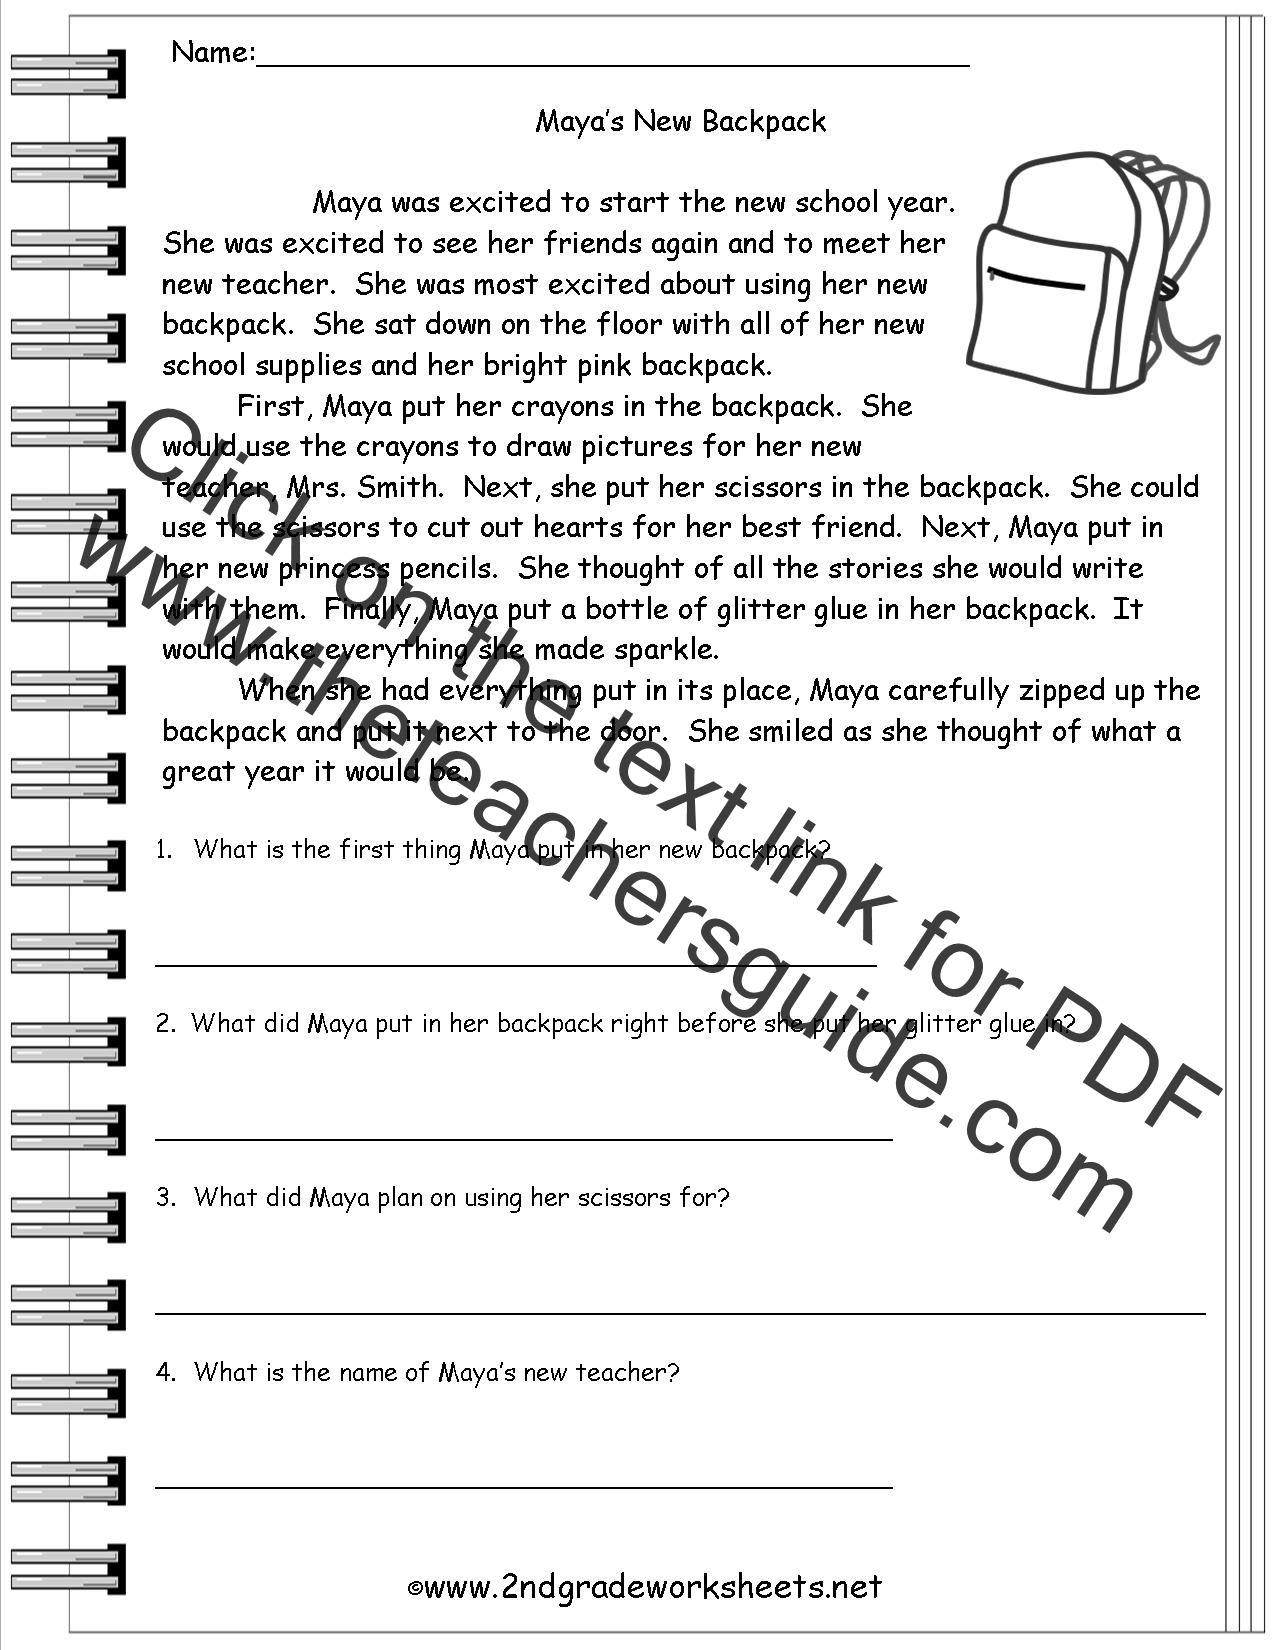 Worksheet Reading Exercise For Grade 1 reading worksheeets literature worksheets